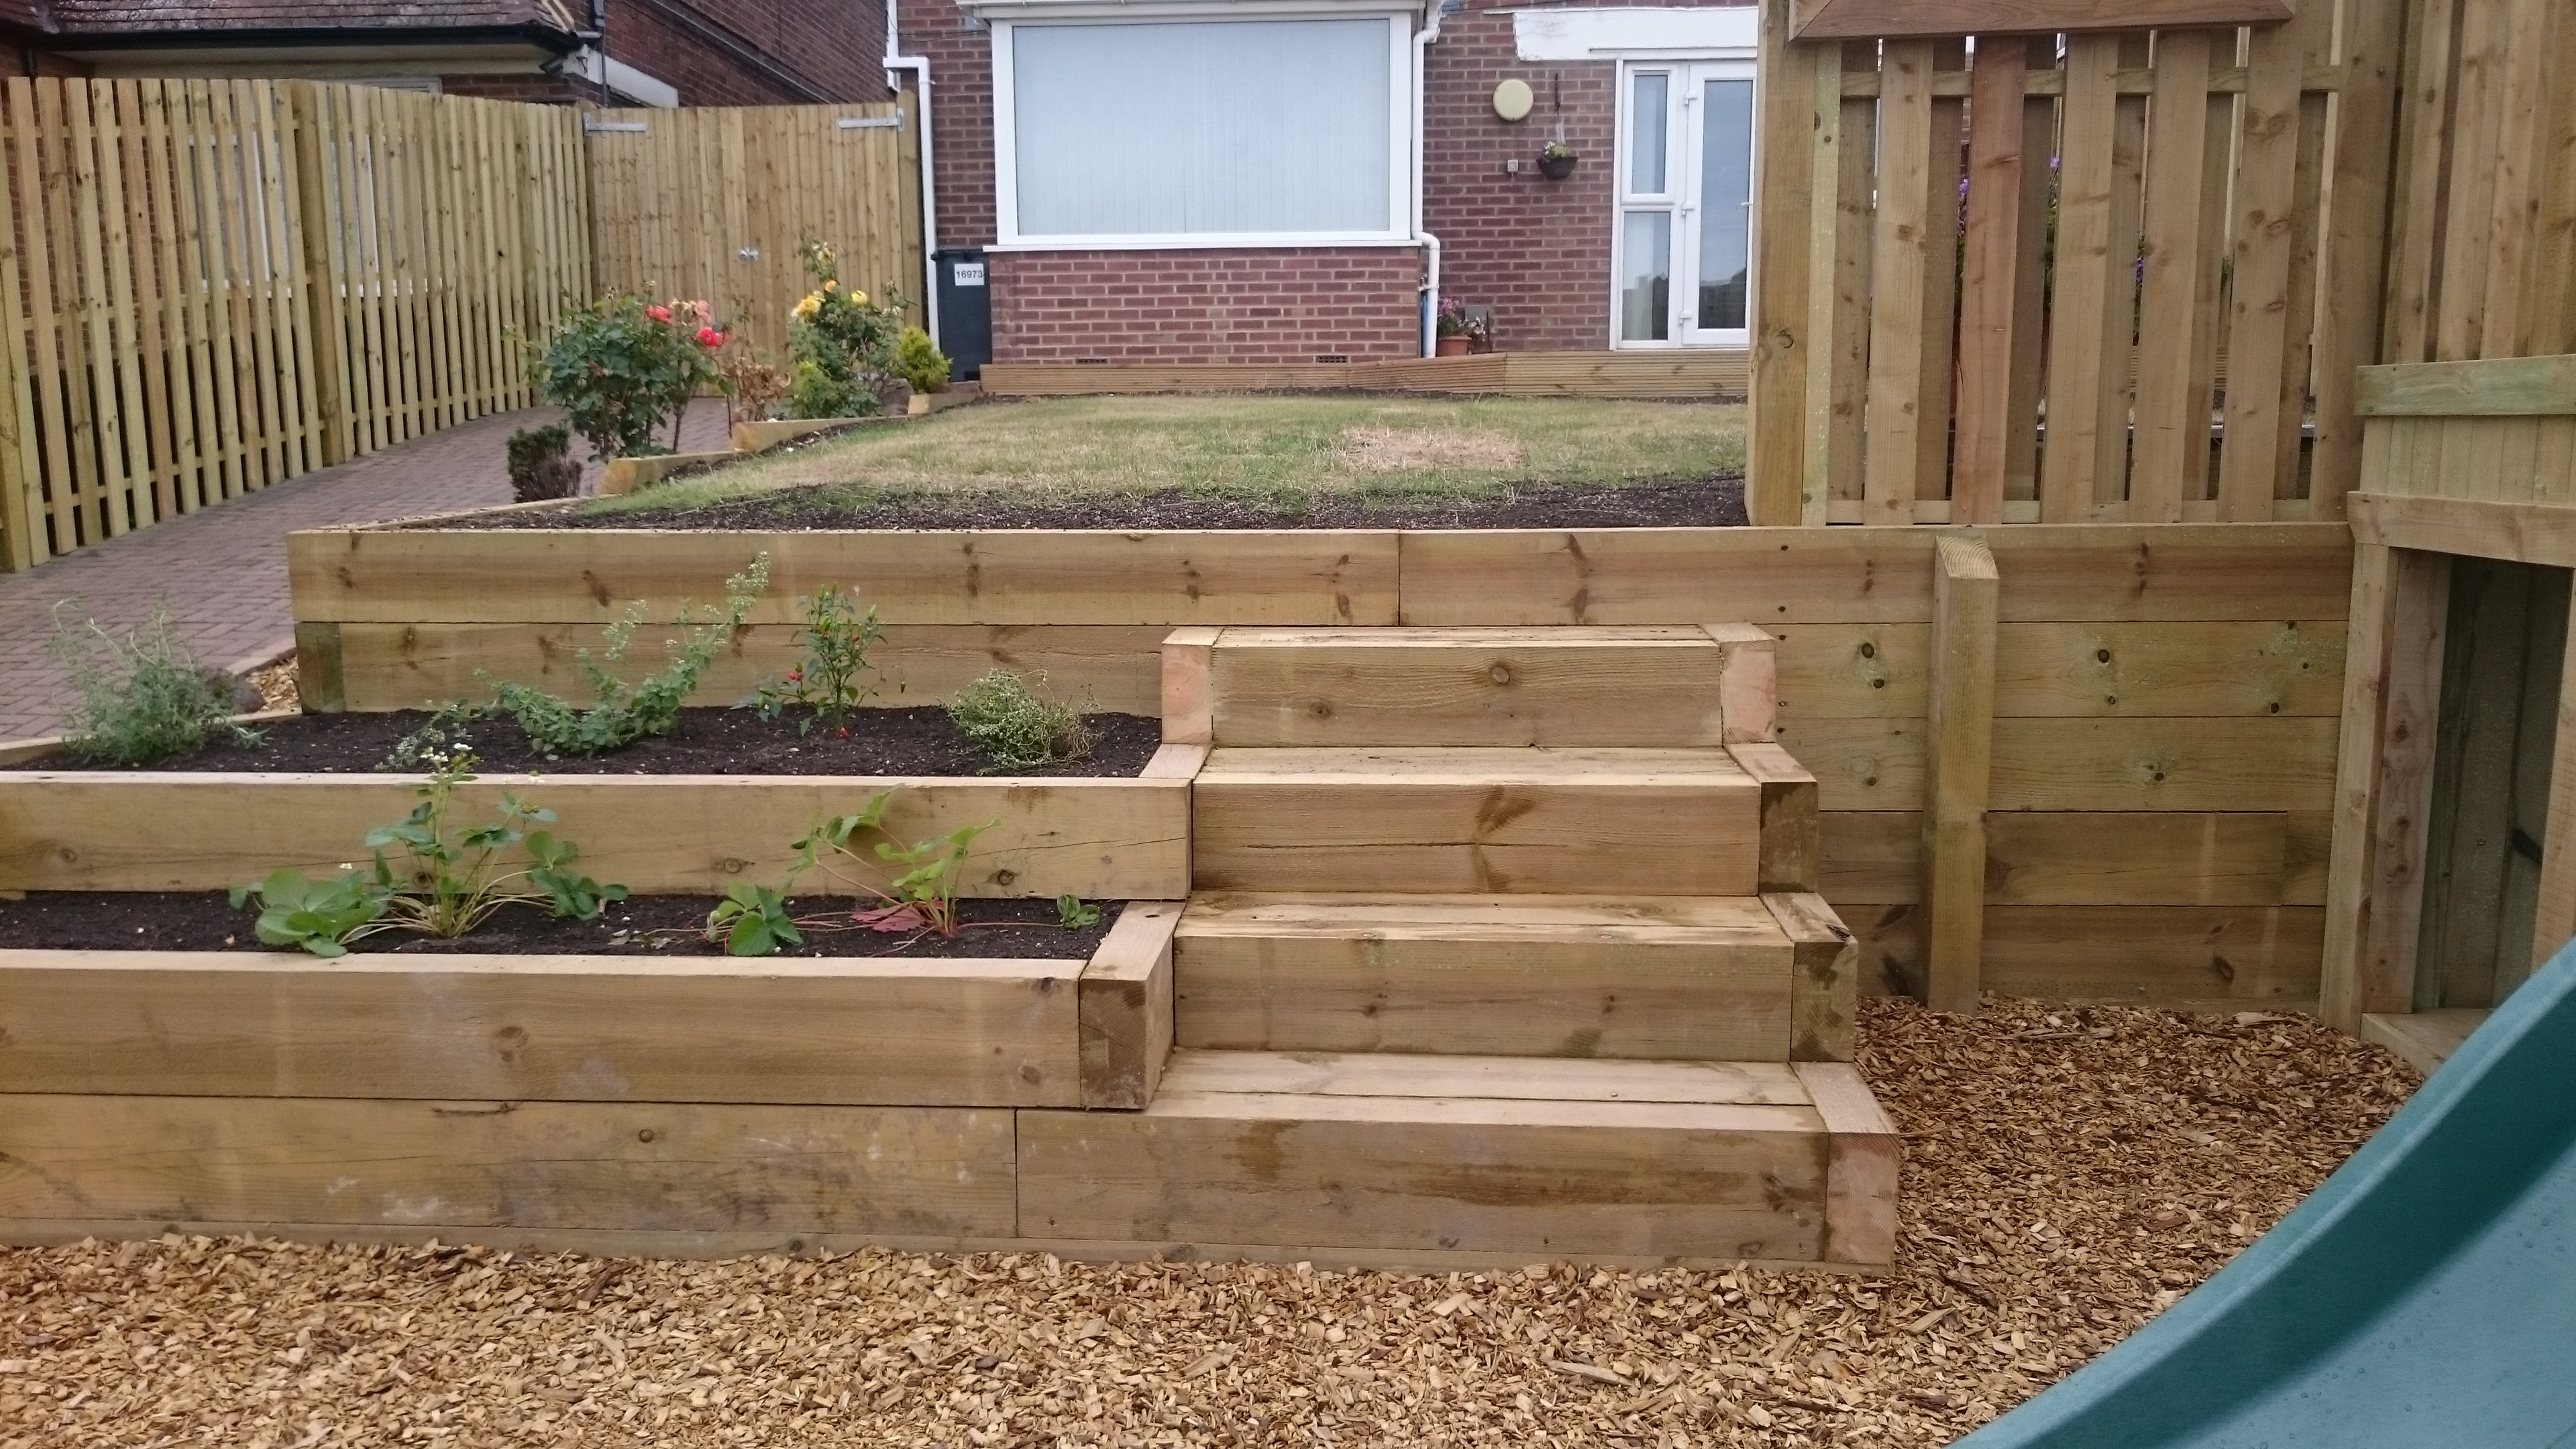 Sleeper planters and steps